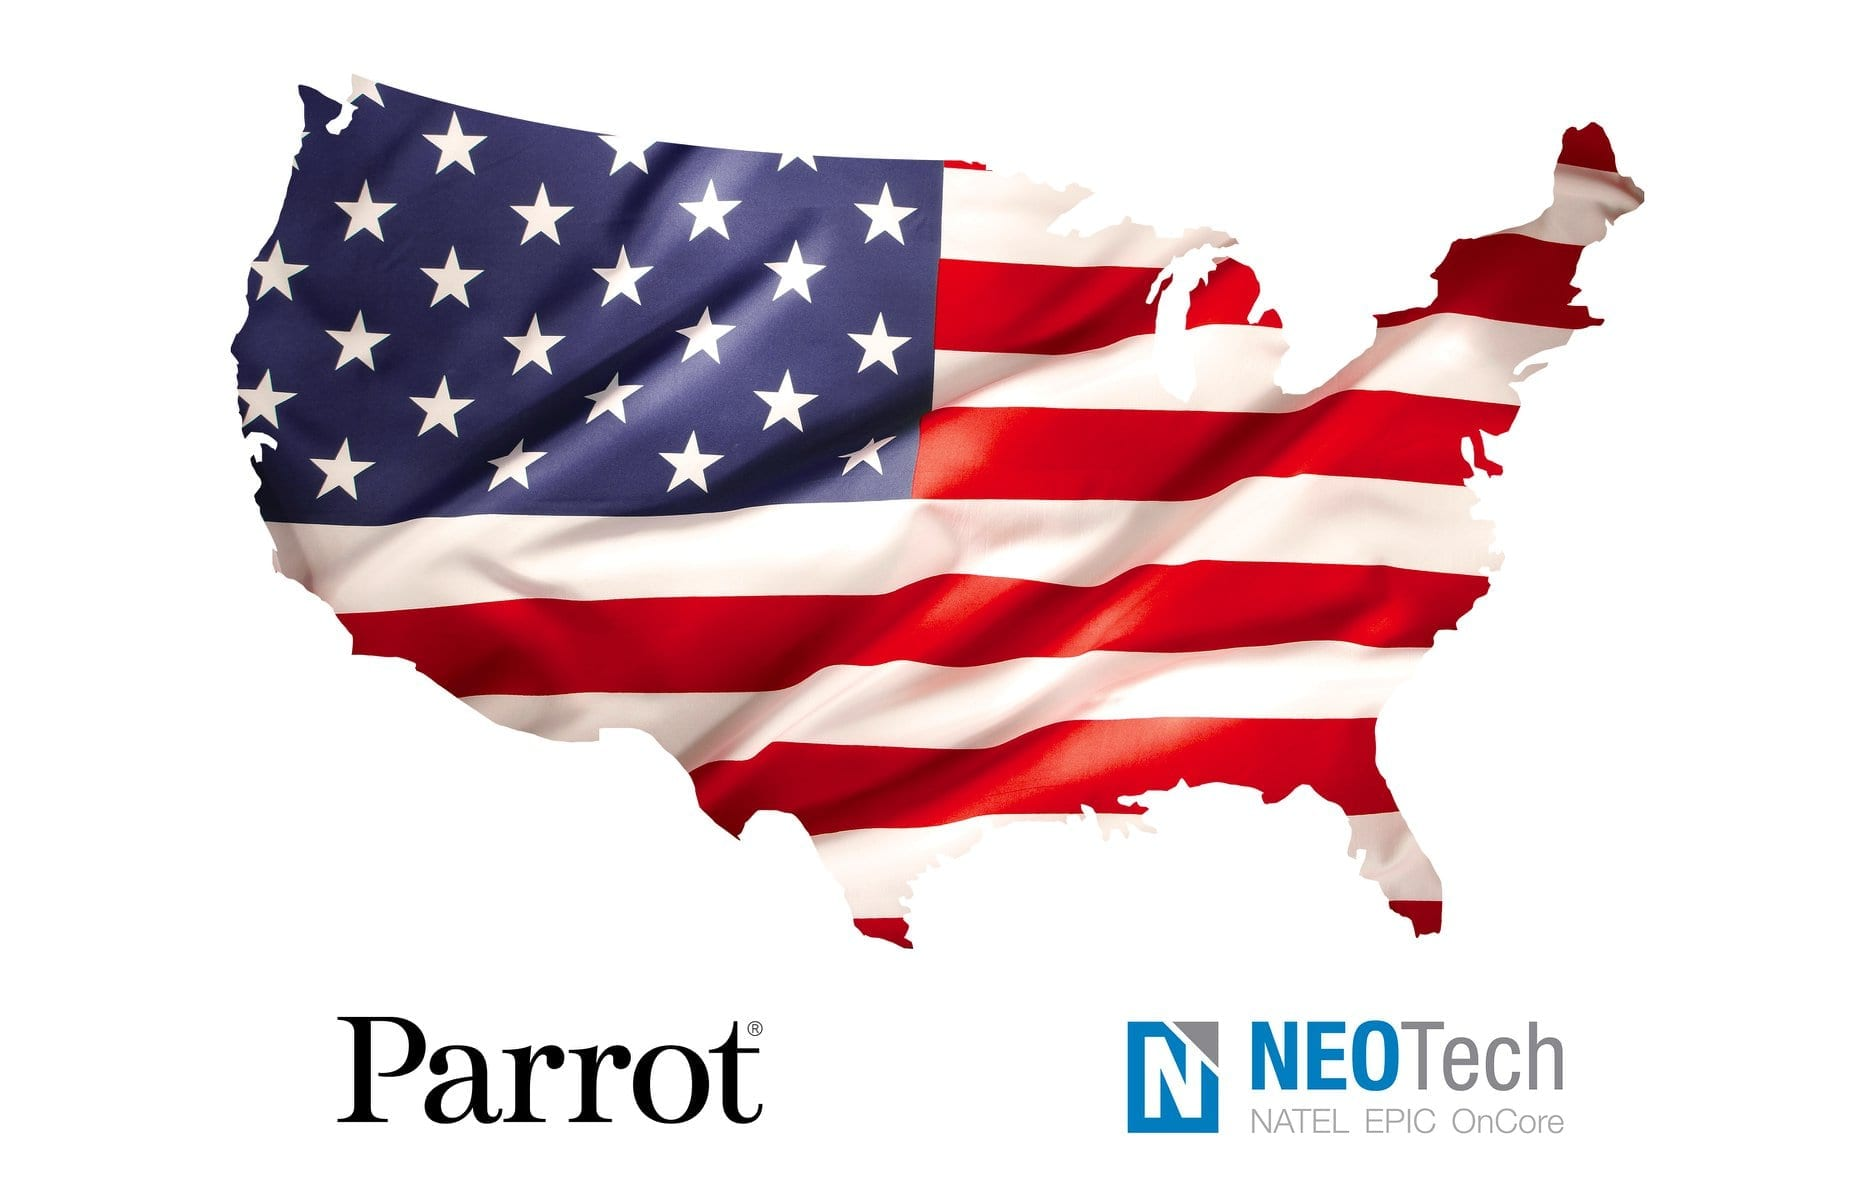 Parrot manufactures drone prototypes for Department of Defense